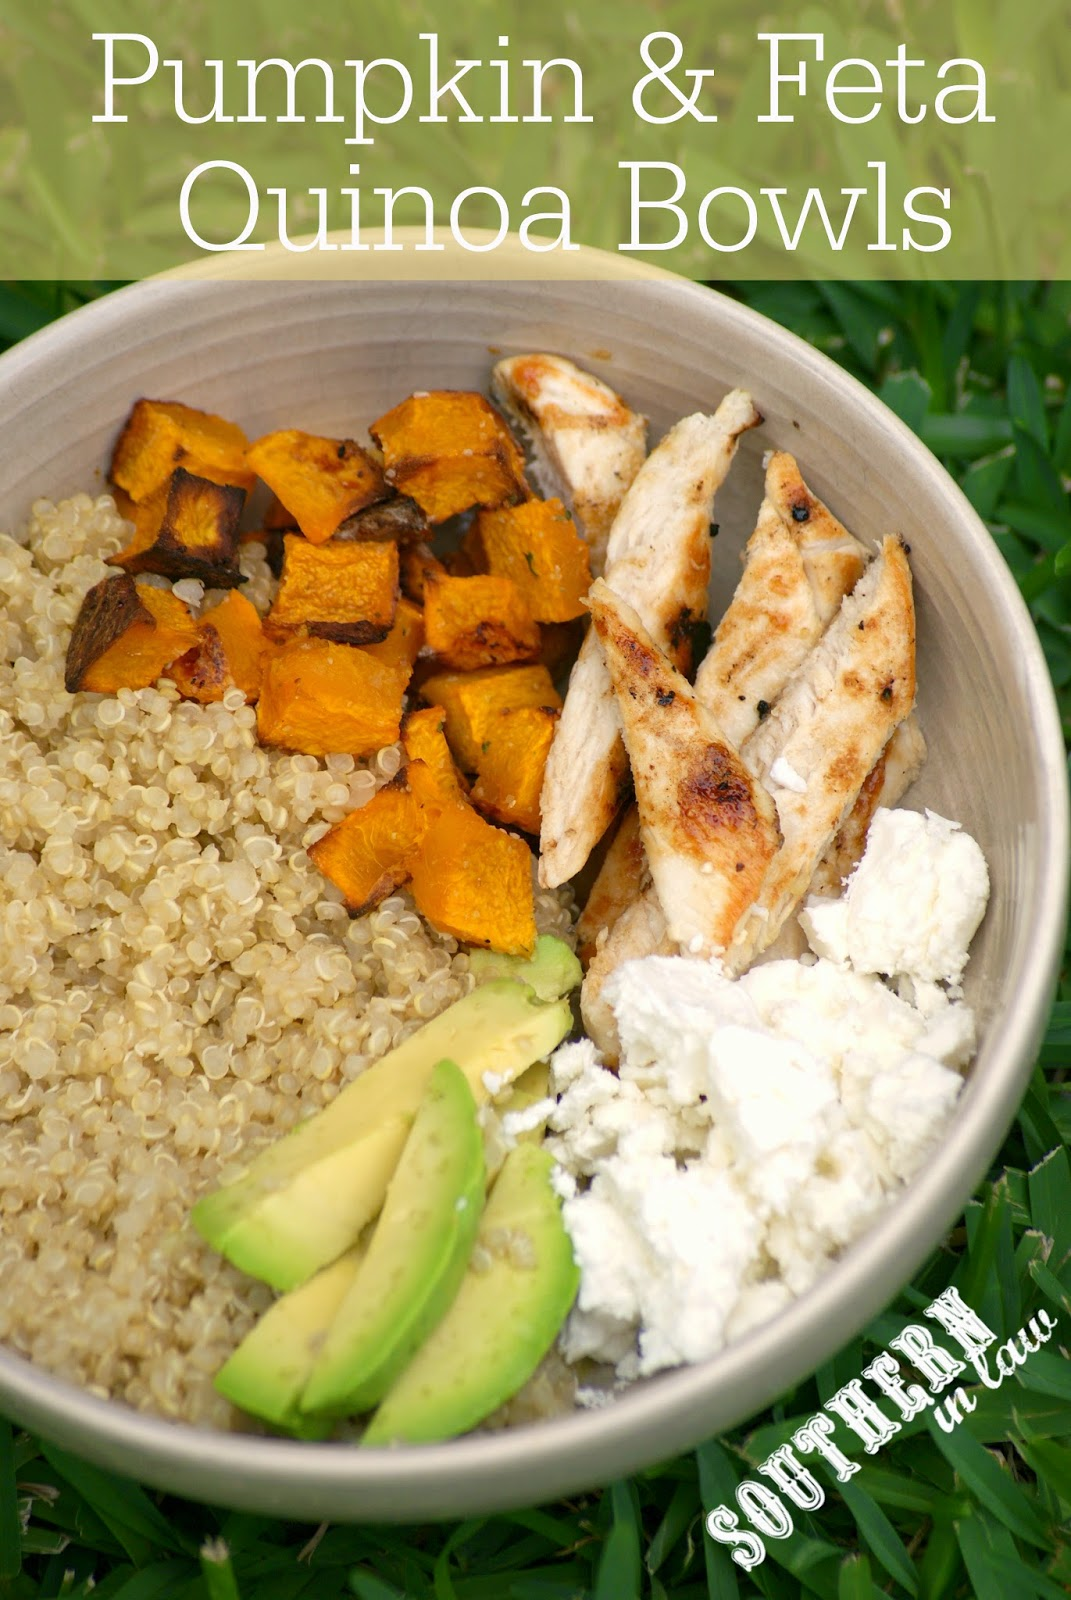 Healthy Roasted Pumpkin and Feta Quinoa Bowls Recipe - low fat, gluten free, vegetarian, clean eating friendly, lower carb, high protein, healthy